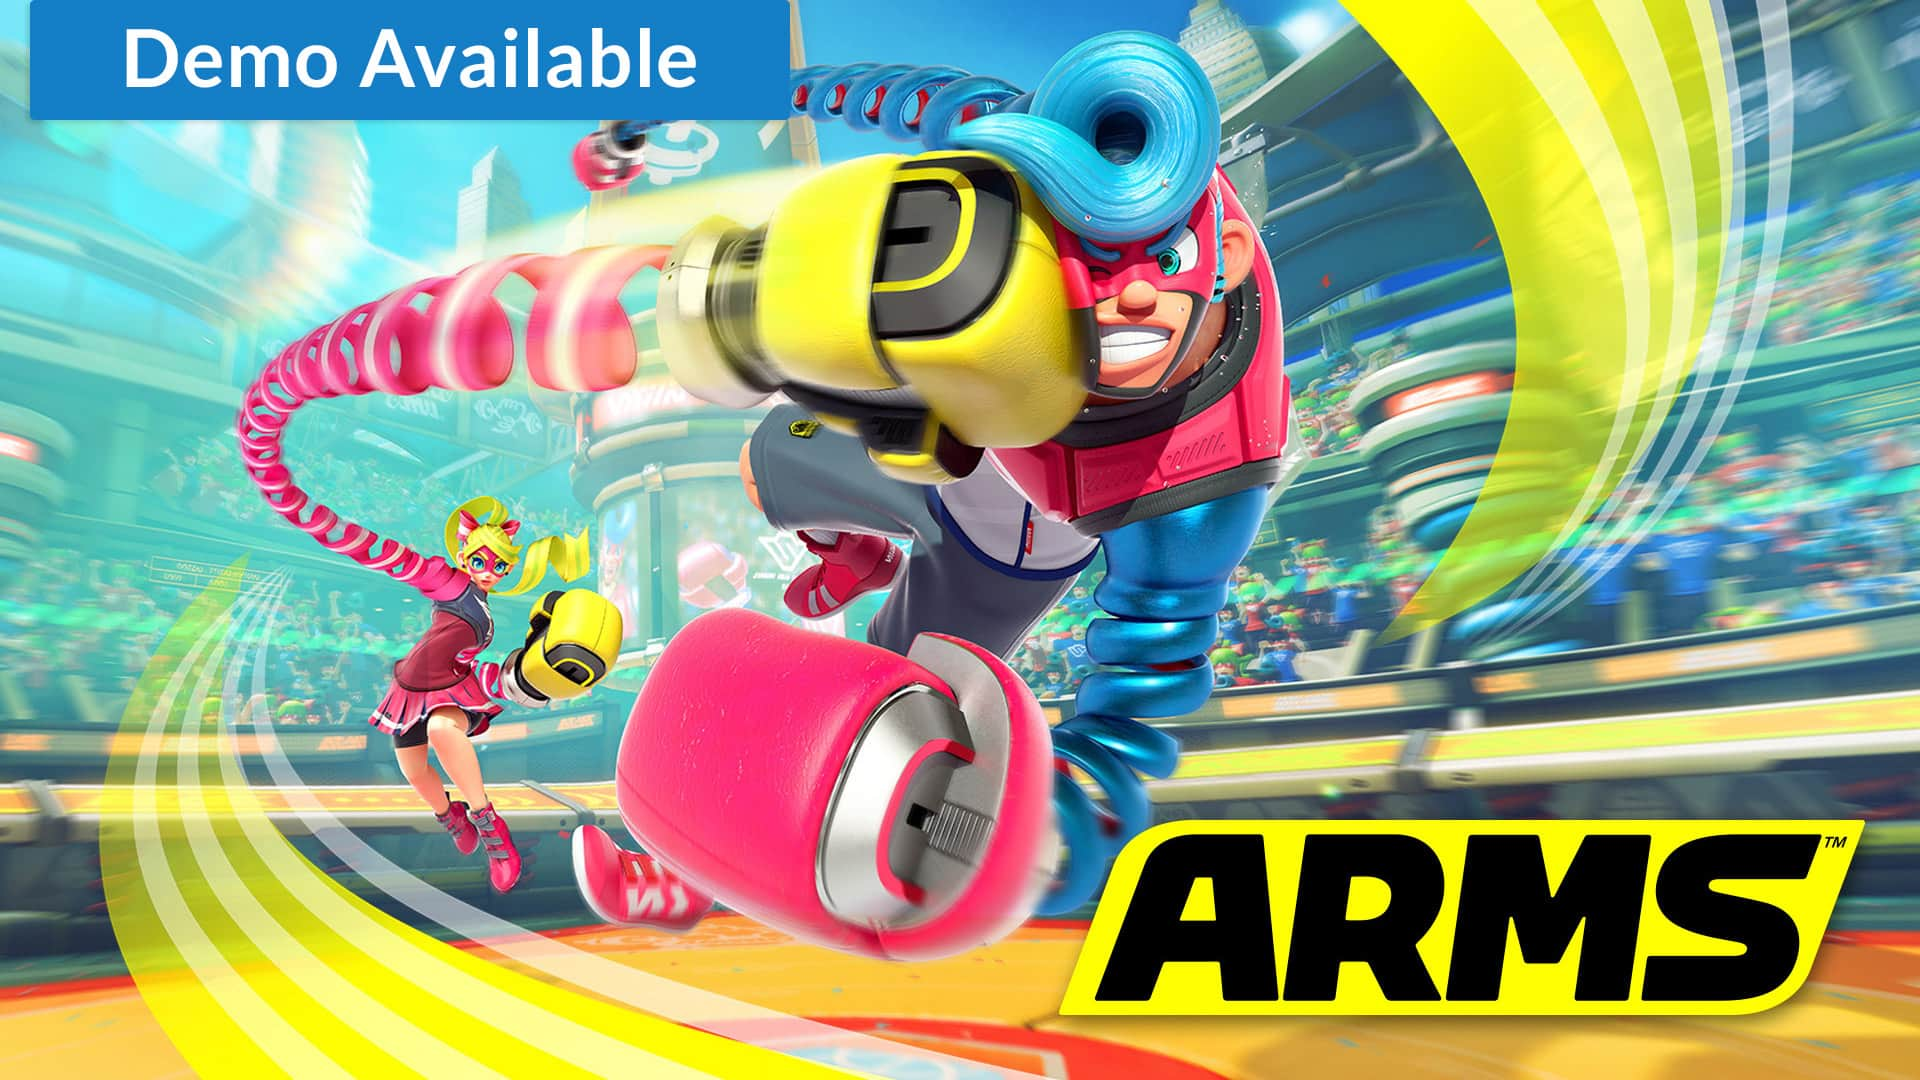 ARMS game trial for Nintendo Switch Online users: Full game FREE until April 6th